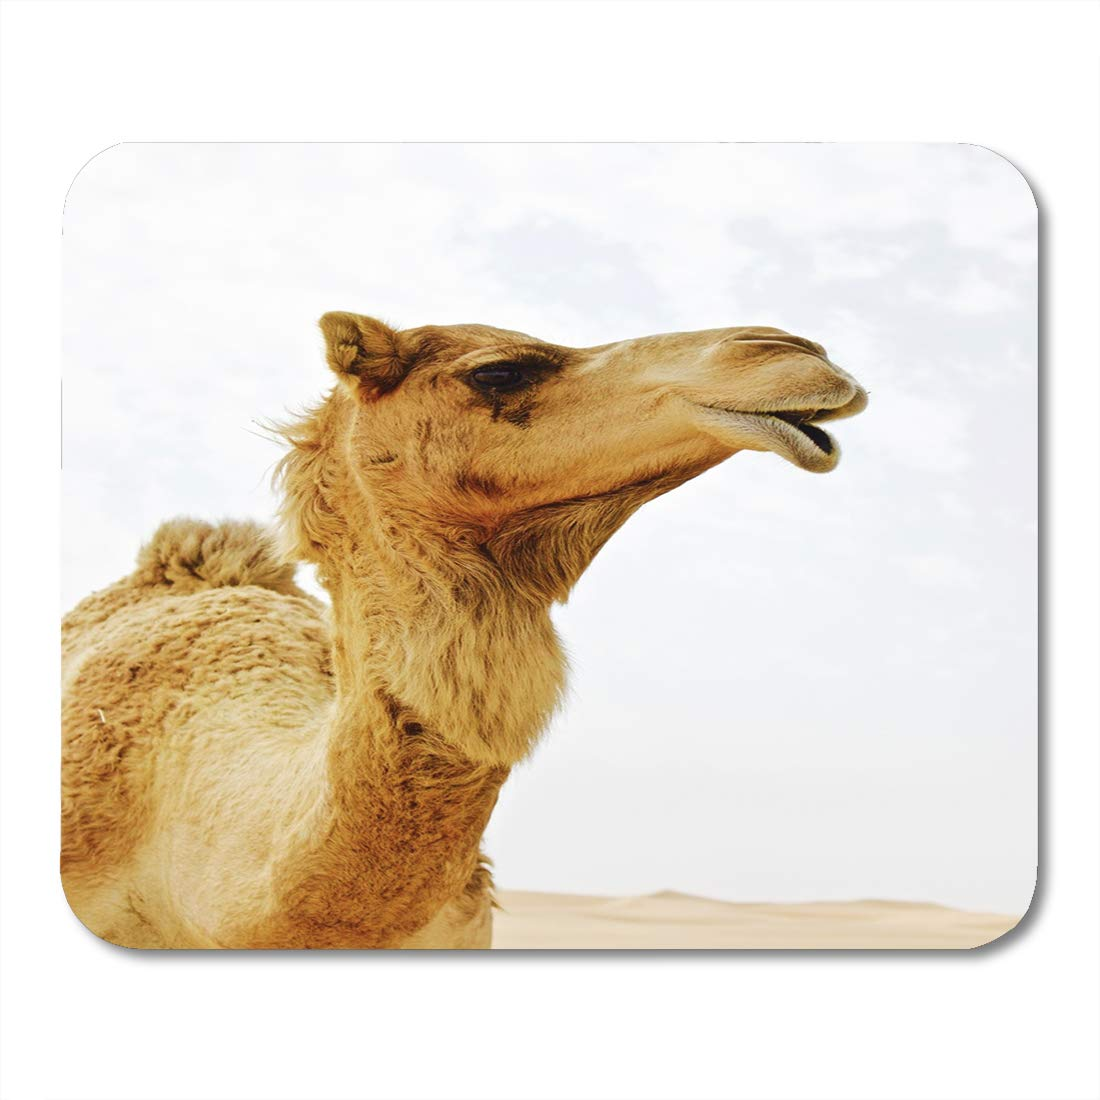 Boszina Mouse Pads Arabian Looking Up At Wild Dromedary Lyn Camel In The Desert With Light Blue White And Hint Of Sand Dunes Sky Pad For